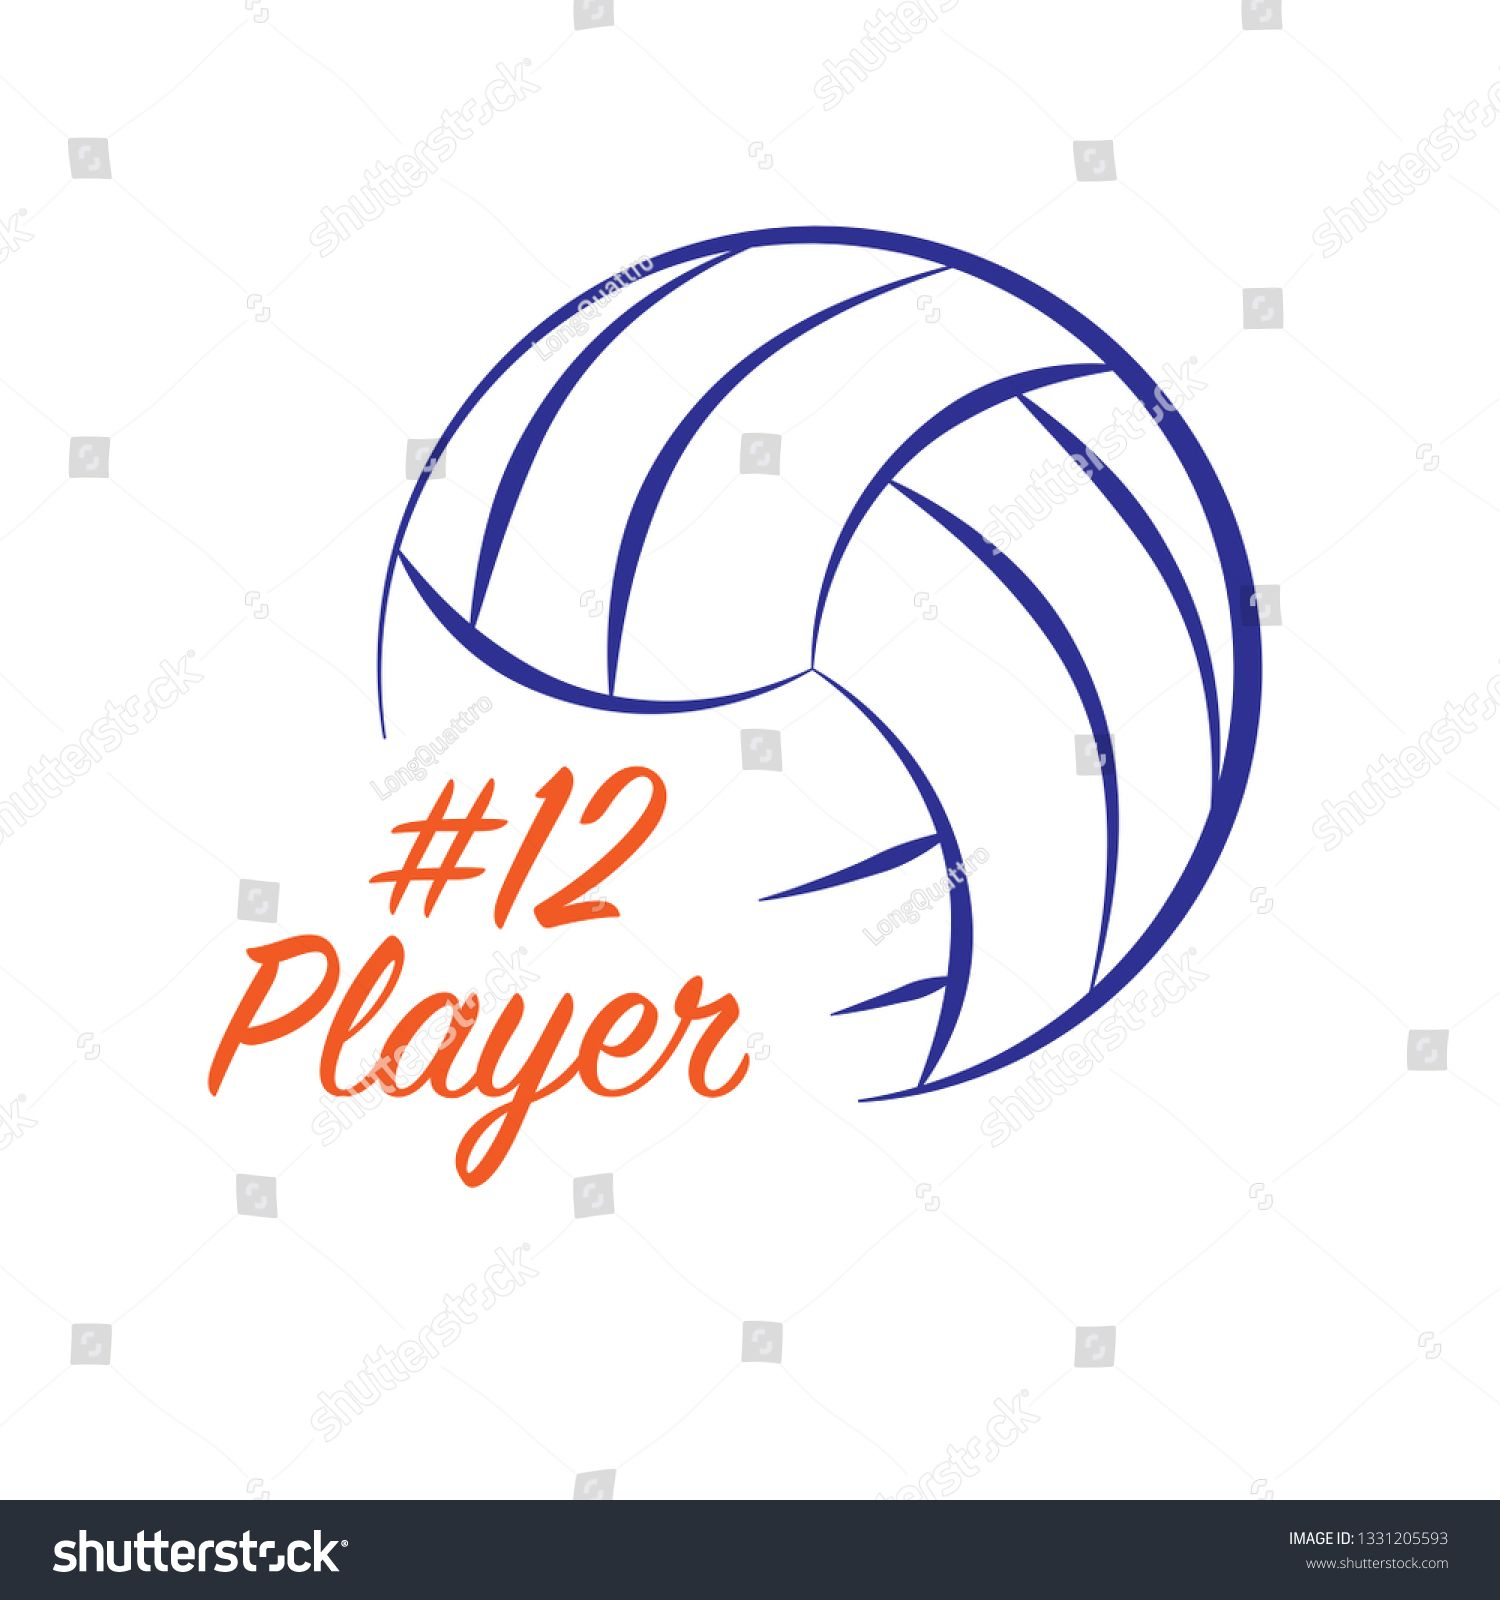 Outline Volleyball Silhouette With Orange Player Name Snd Number Ad Spon Silhouette Volleyball Outline Orange Volleyball Silhouette Outline Silhouette